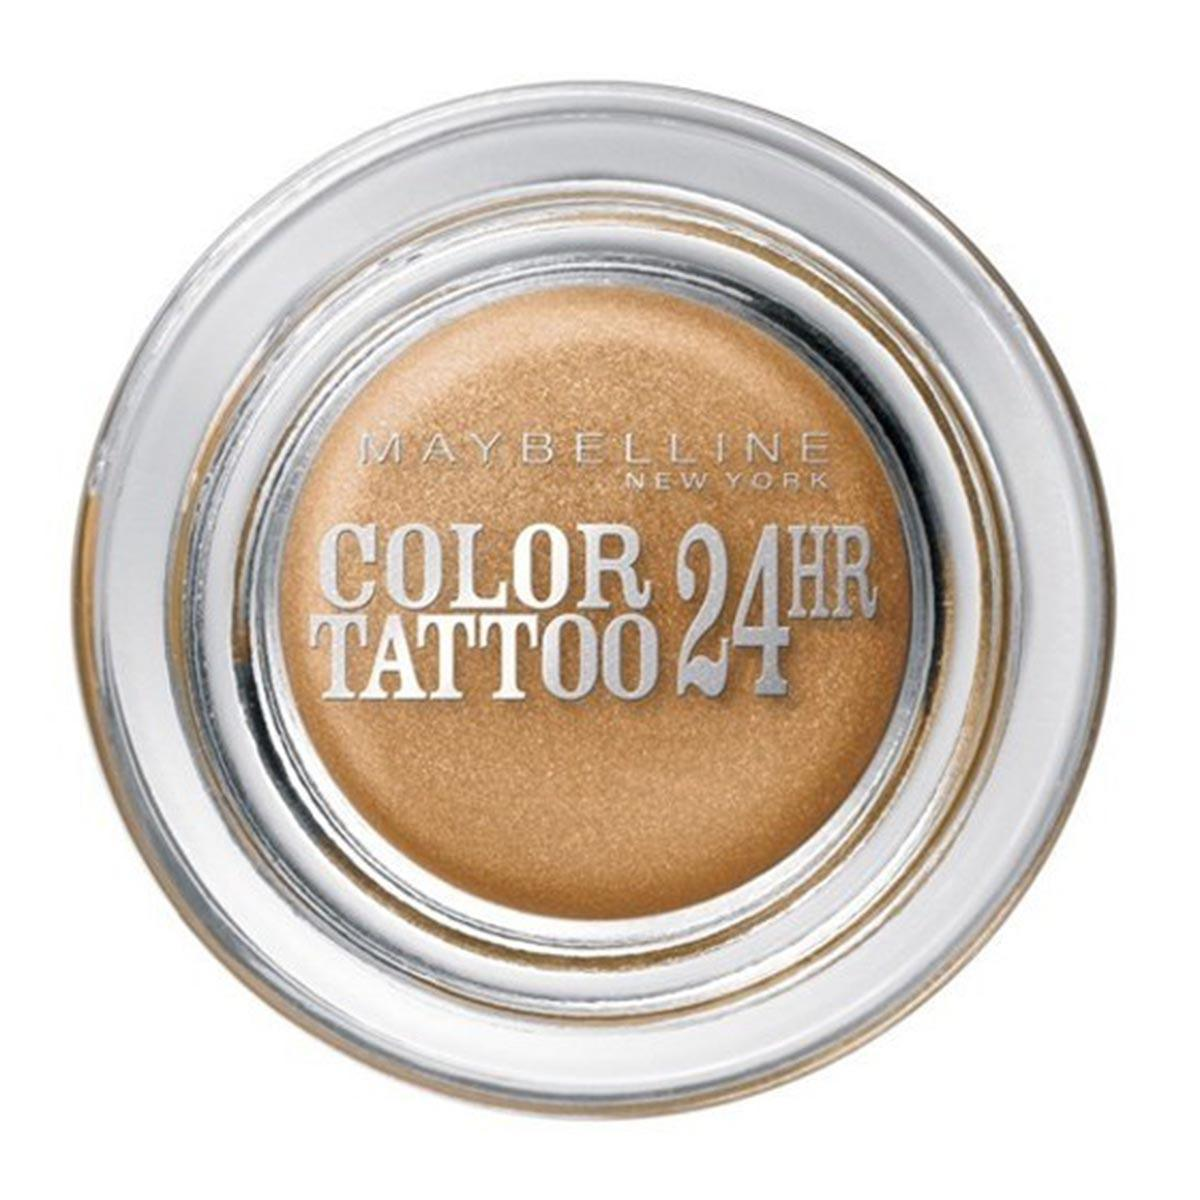 Maybelline Color Tattoo 24H 005